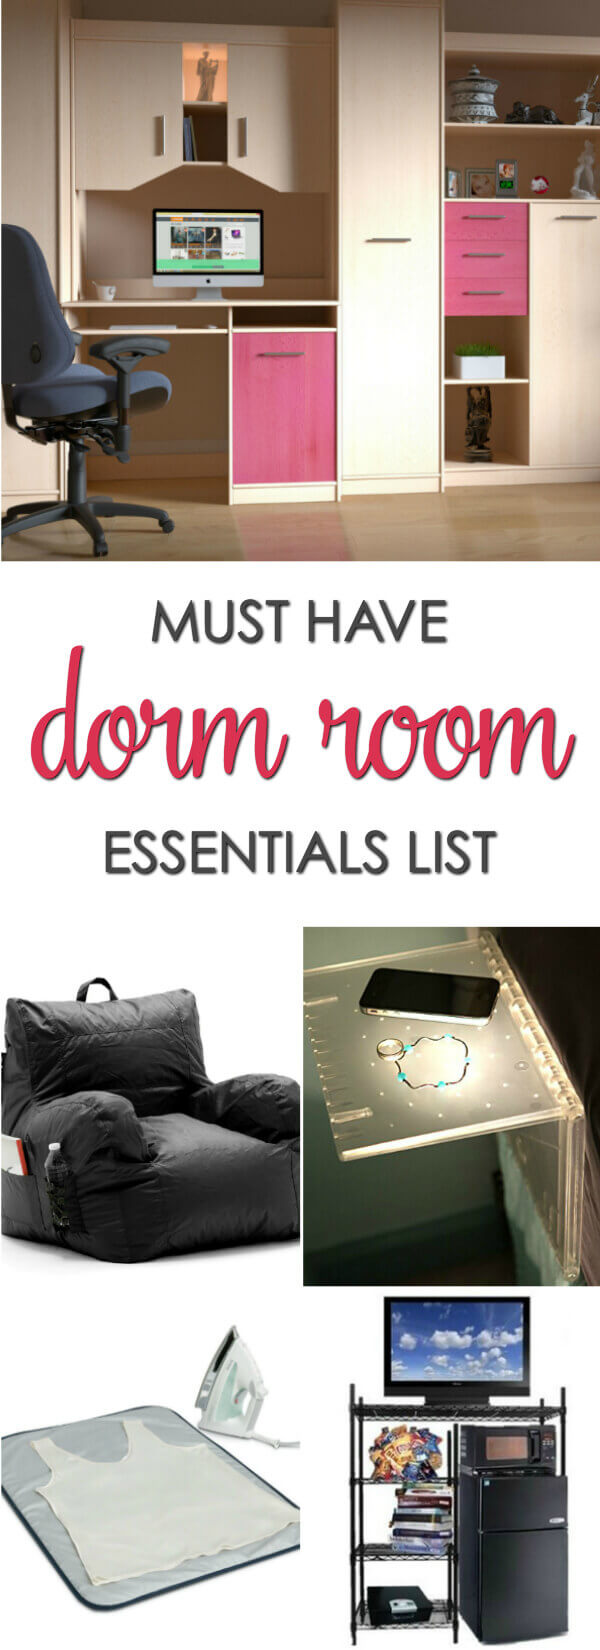 Must Have Dorm Room Essentials List